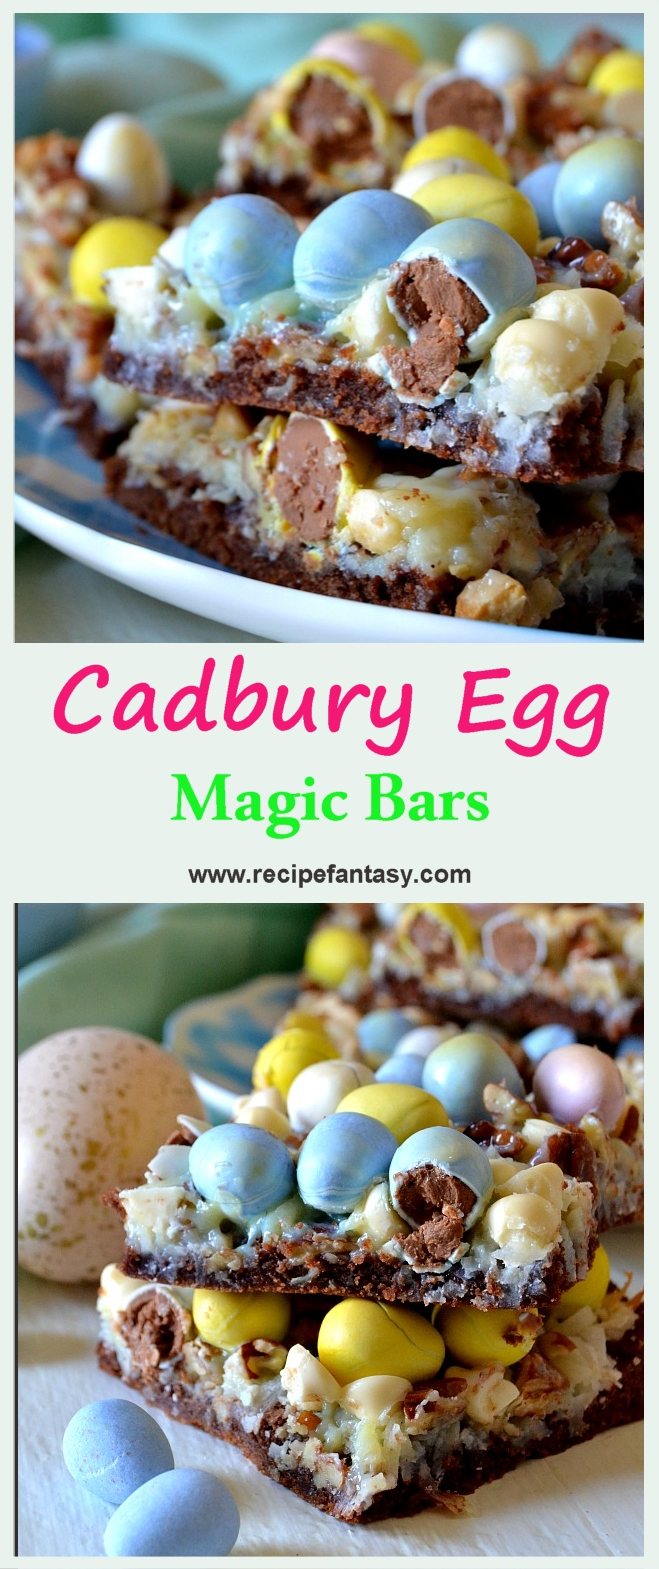 Cadbury Egg Magic Bars